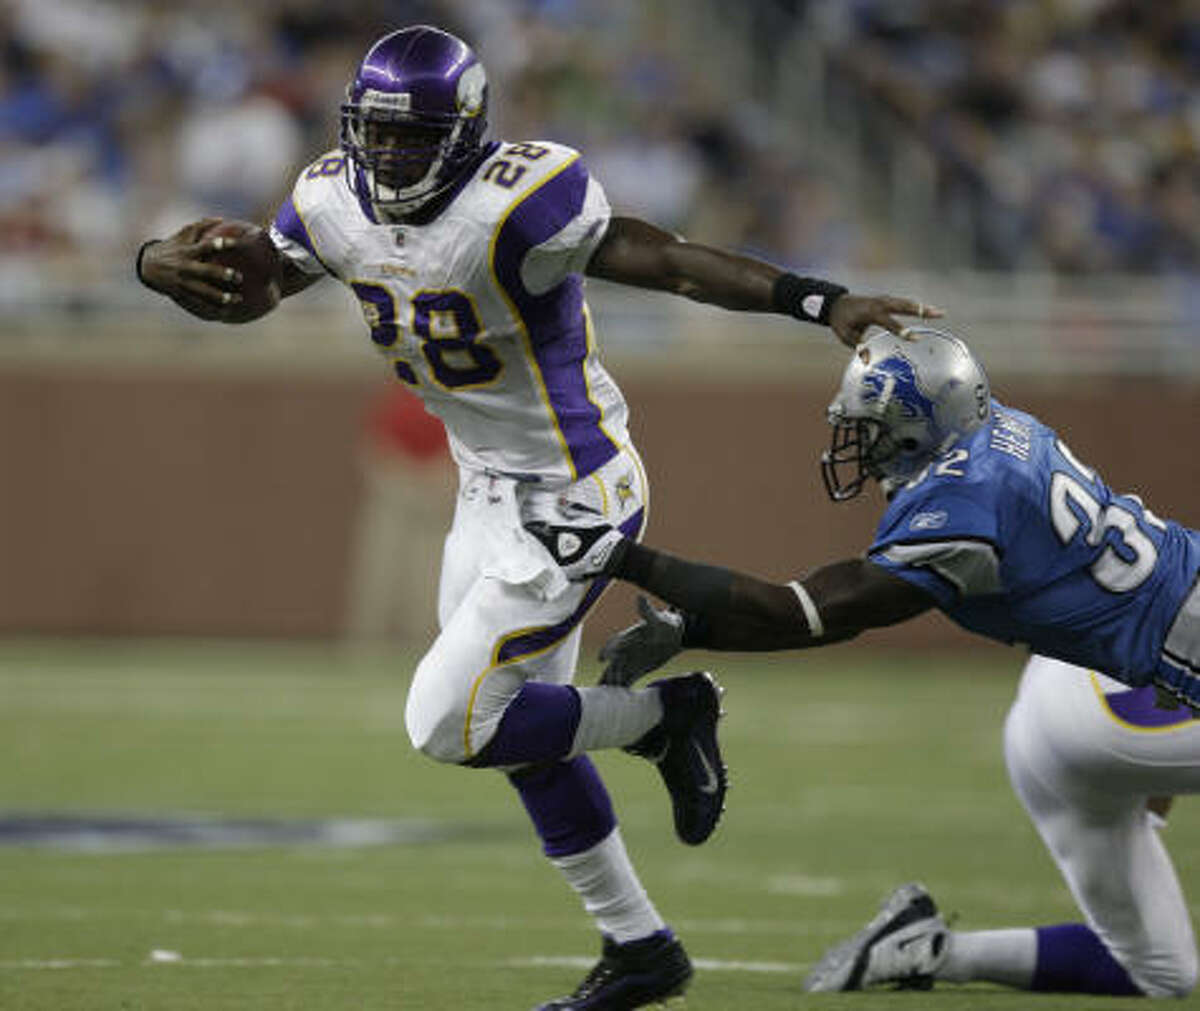 Vikings 27, Lions 13 Vikings running back Adrian Peterson breaks a tackle by Detroit's Anthony Henry and sprints to the end zone for a touchdown in the third quarter.